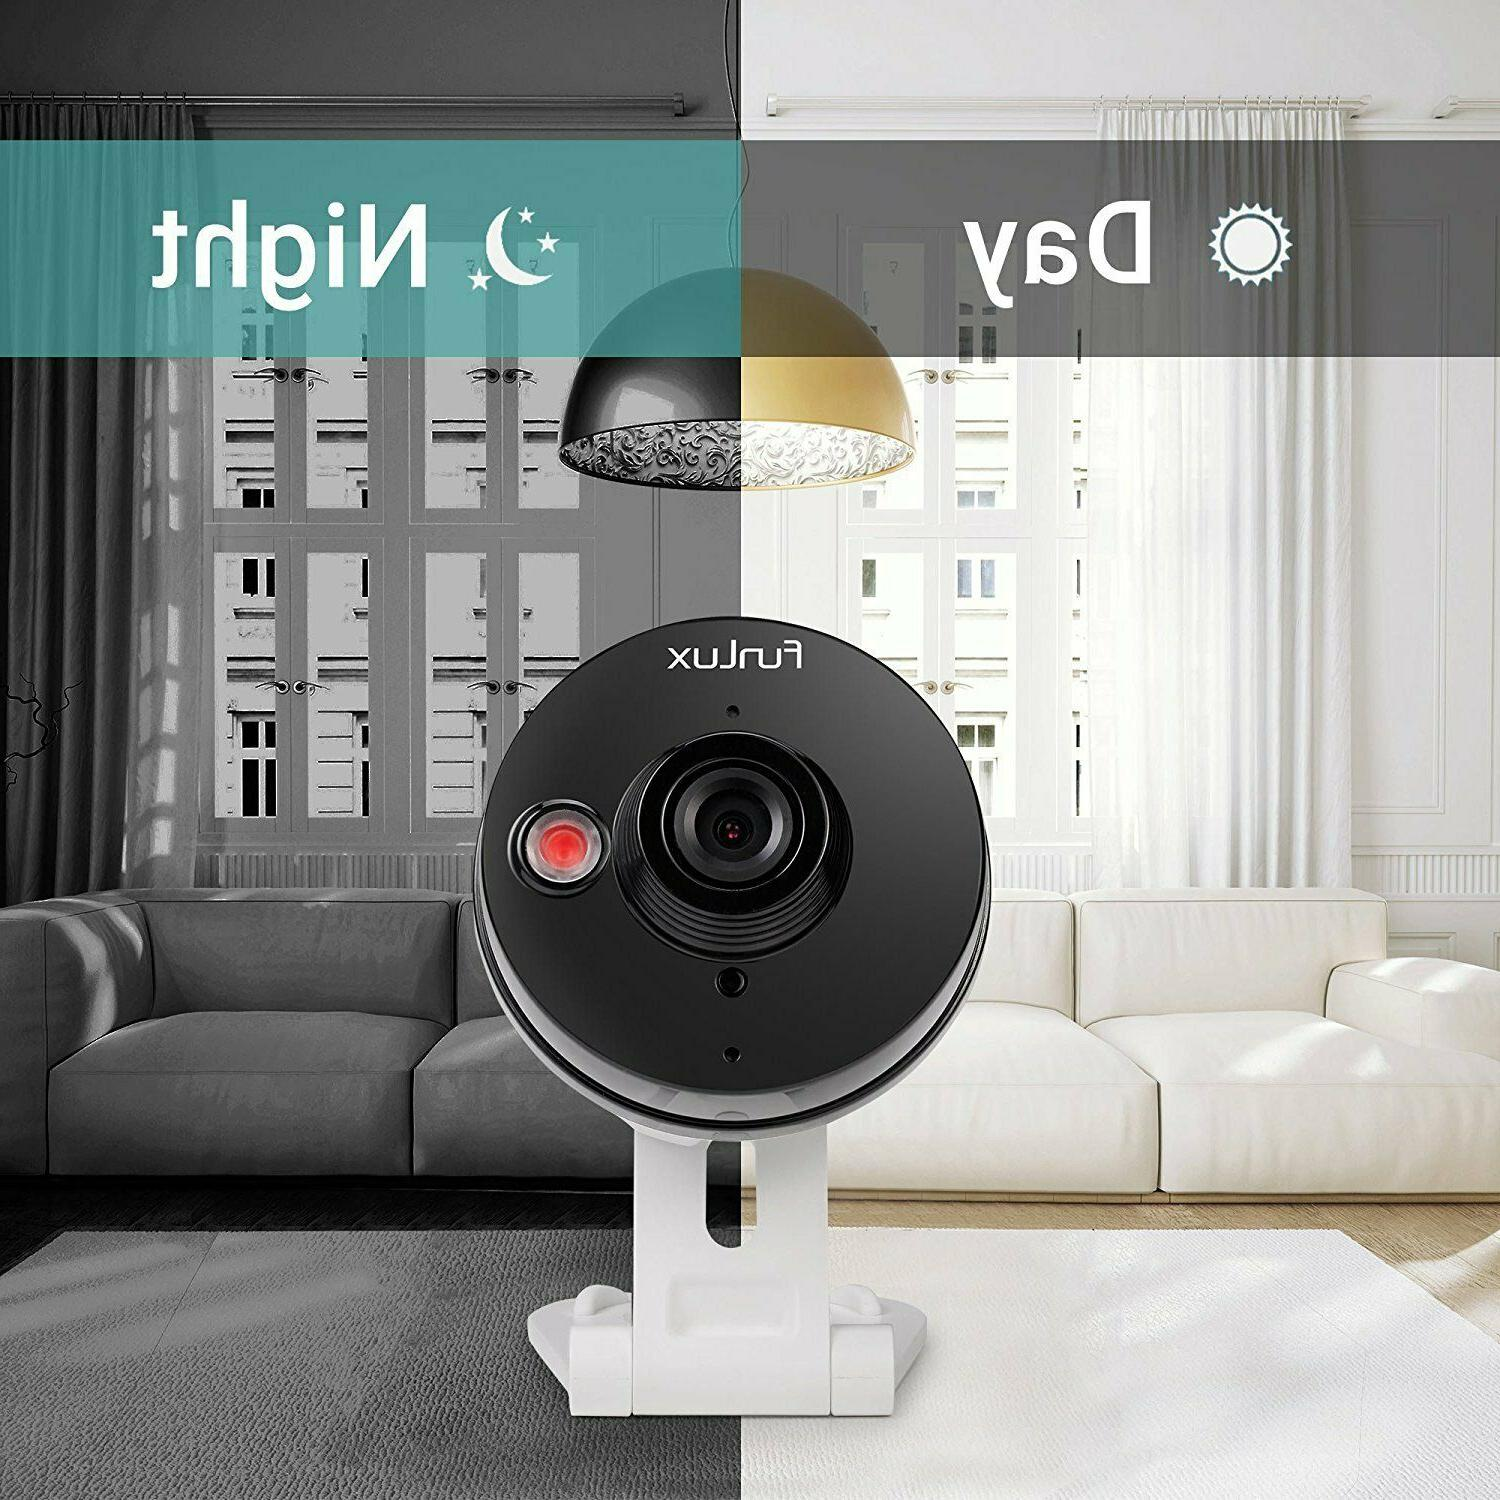 Home Security Camera Smart HD WiFi 2